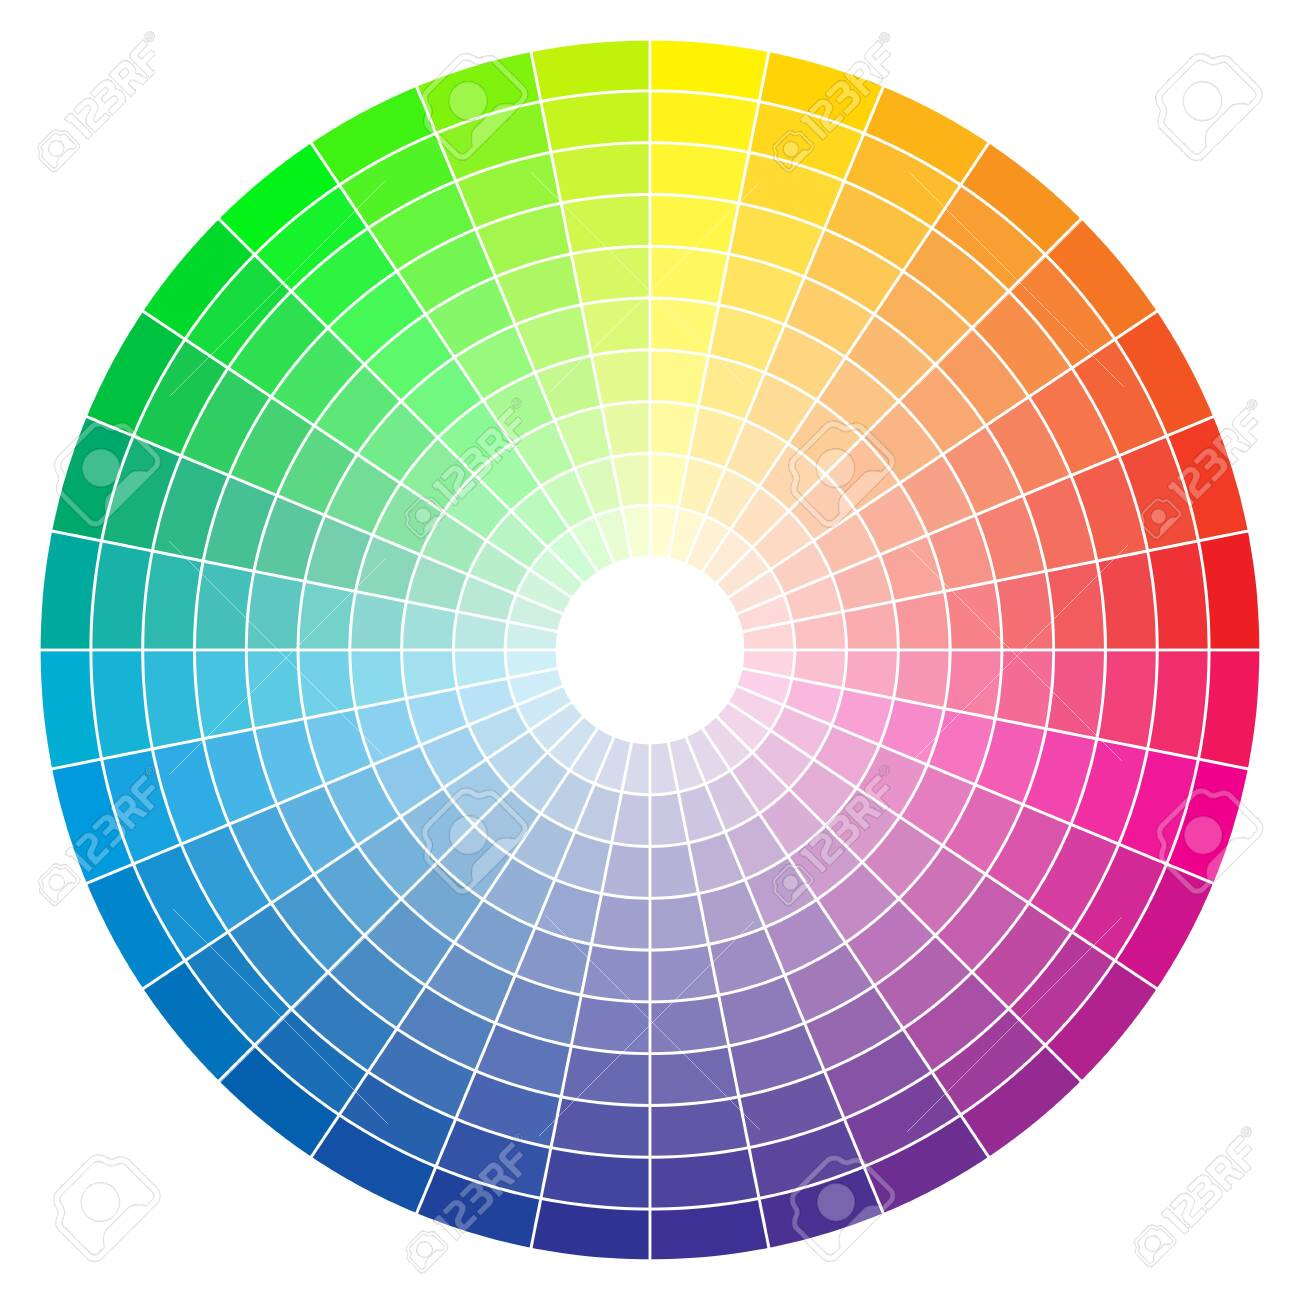 Color spectrum abstract wheel, colorful diagram background. Color wheel isolated on white background. - 150016138